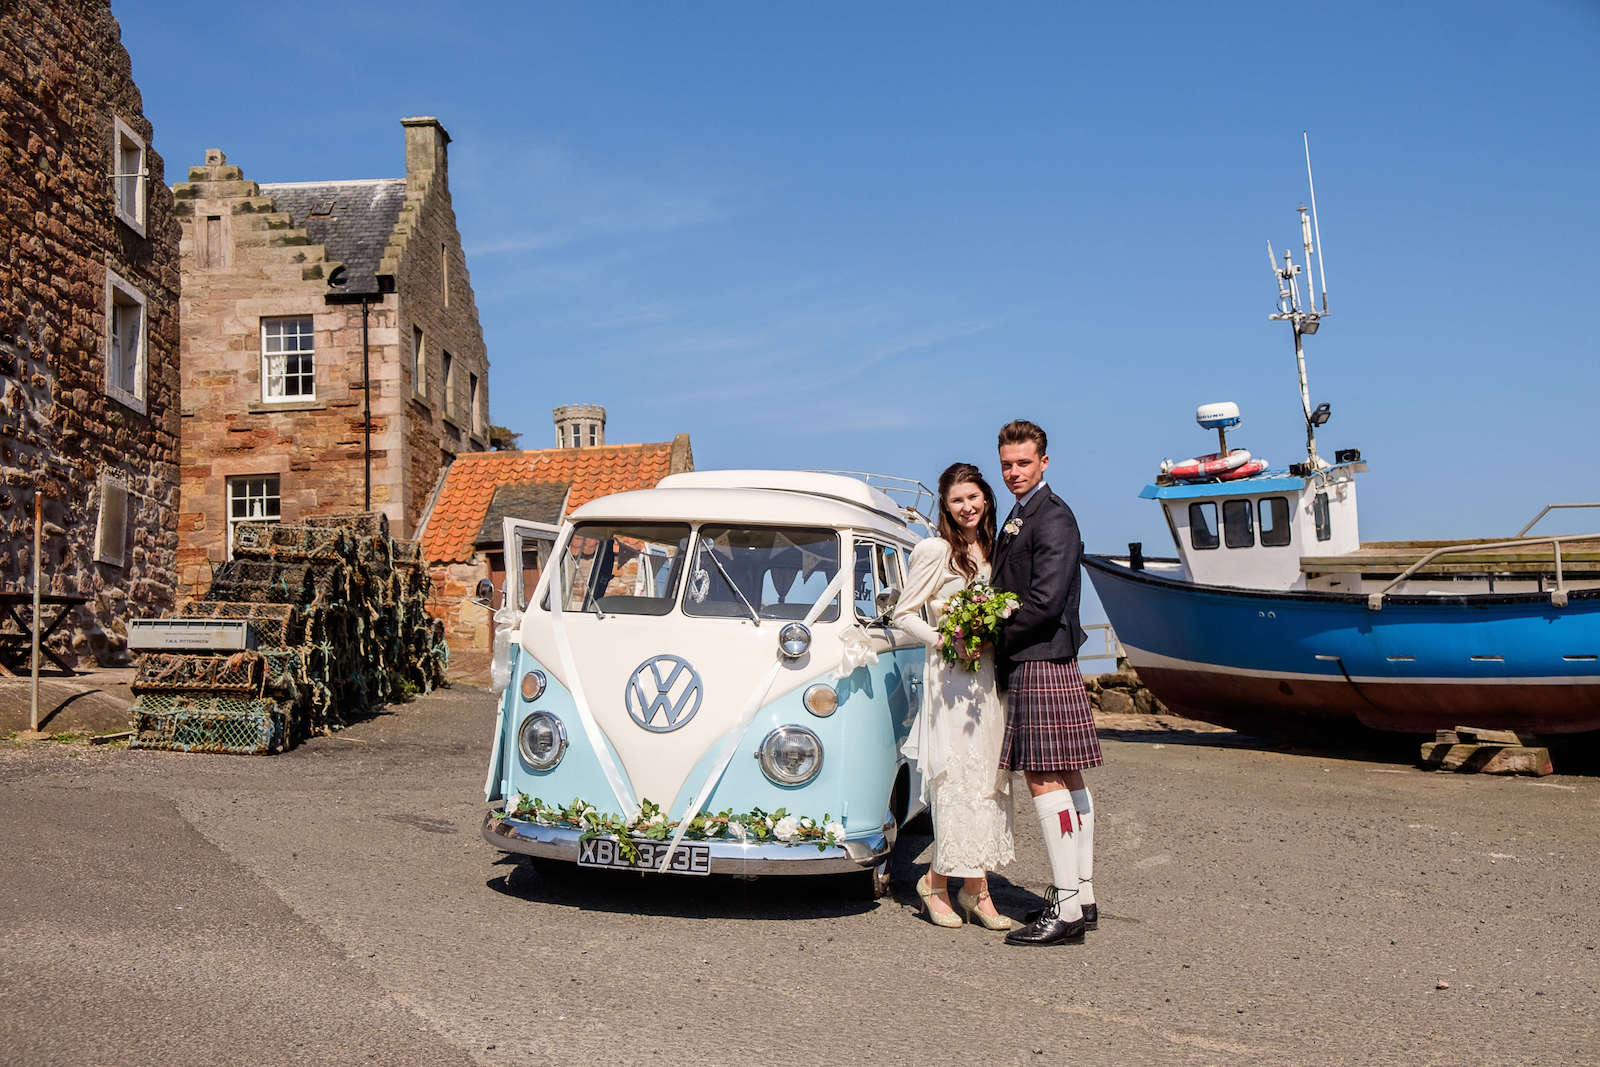 VW-camper-wedding-car-lickety-split-1.jpg